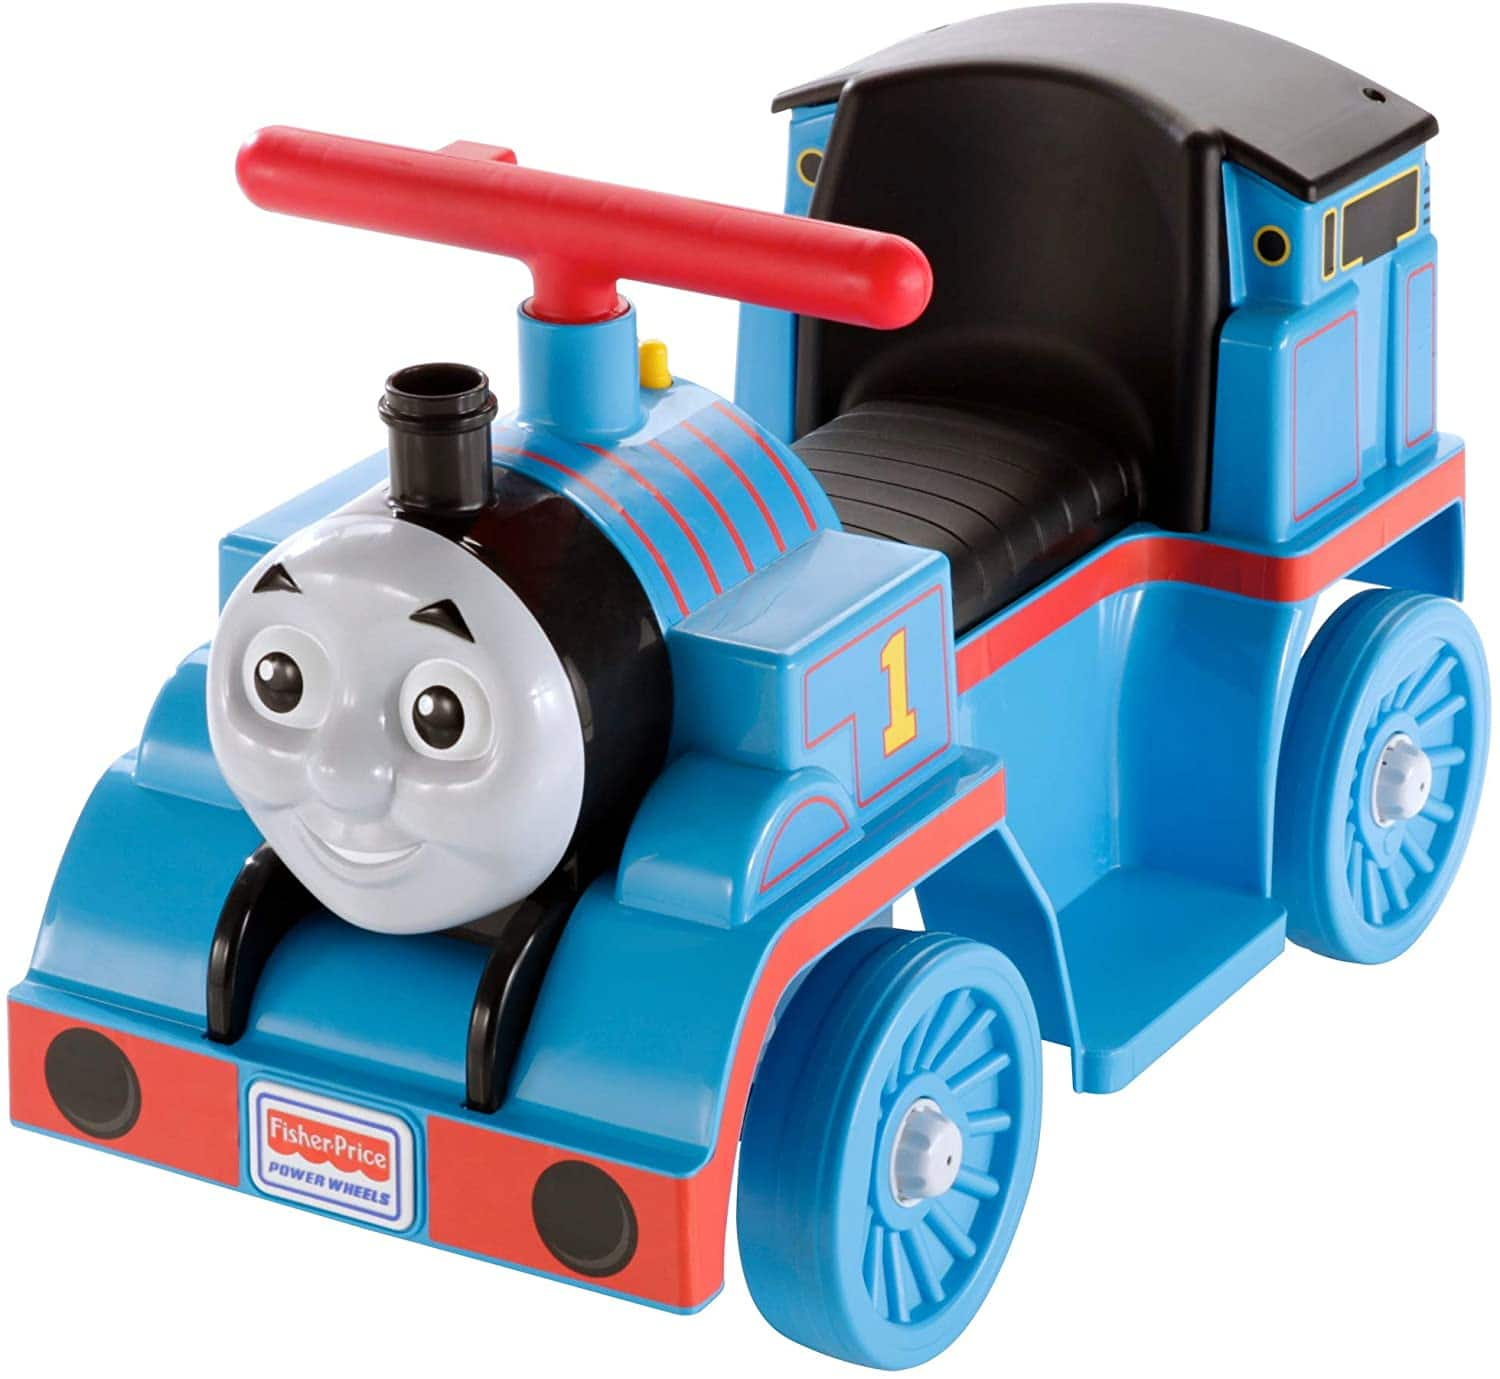 Power Wheels 6V Battery Powered Thomas the Train Ride-On with Track $80 + Free Shipping